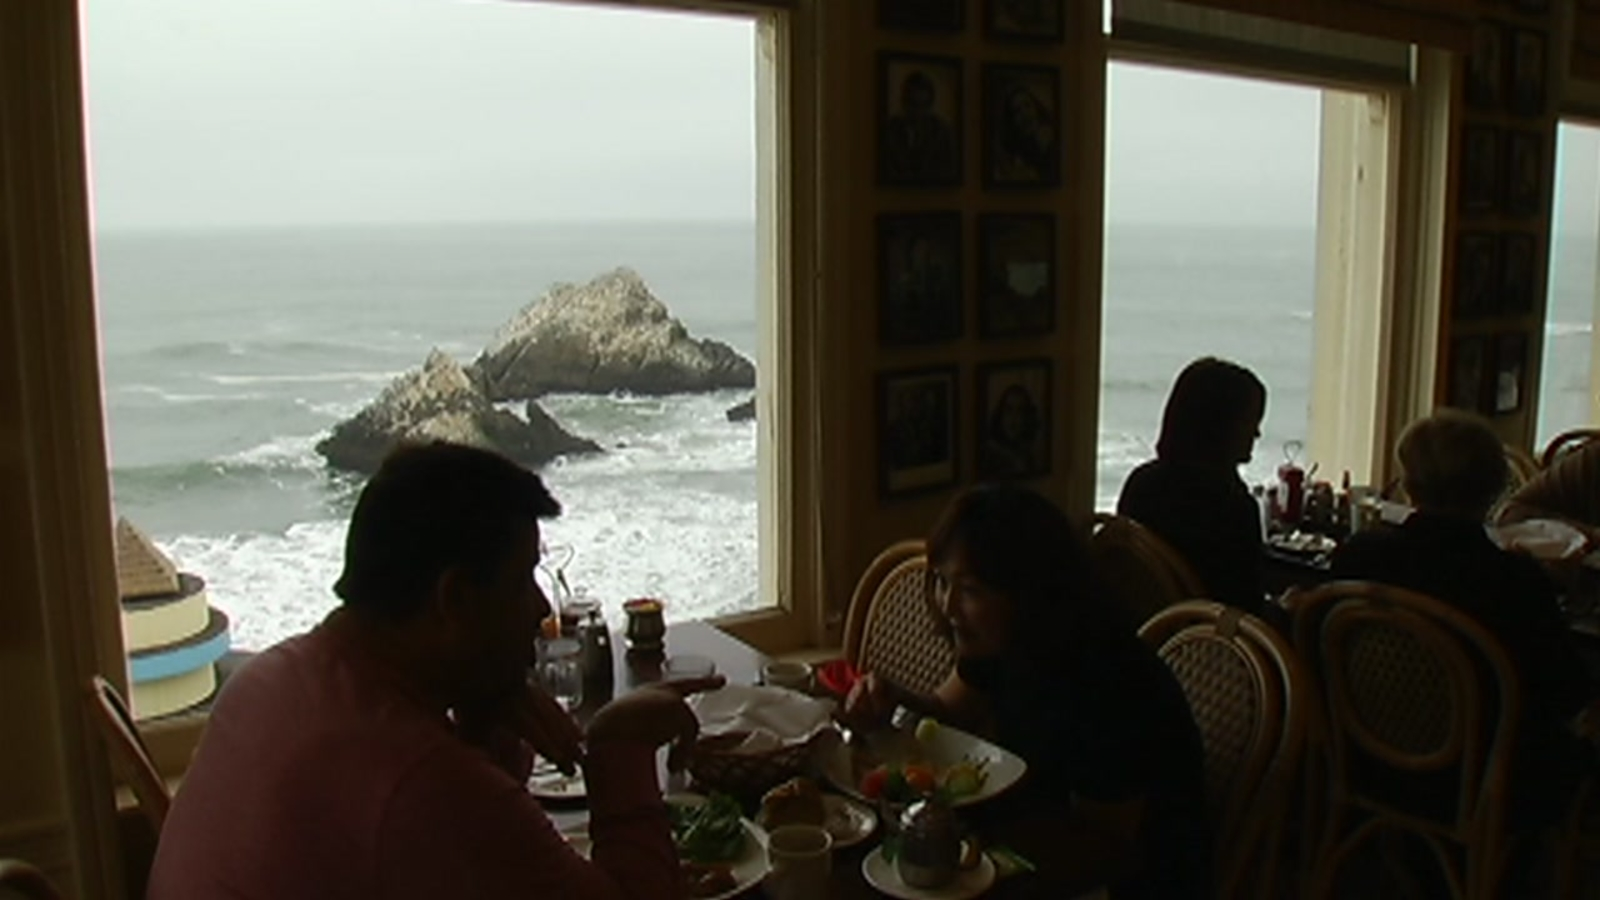 National Park Service accepting applications to lease San Francisco's Cliff House